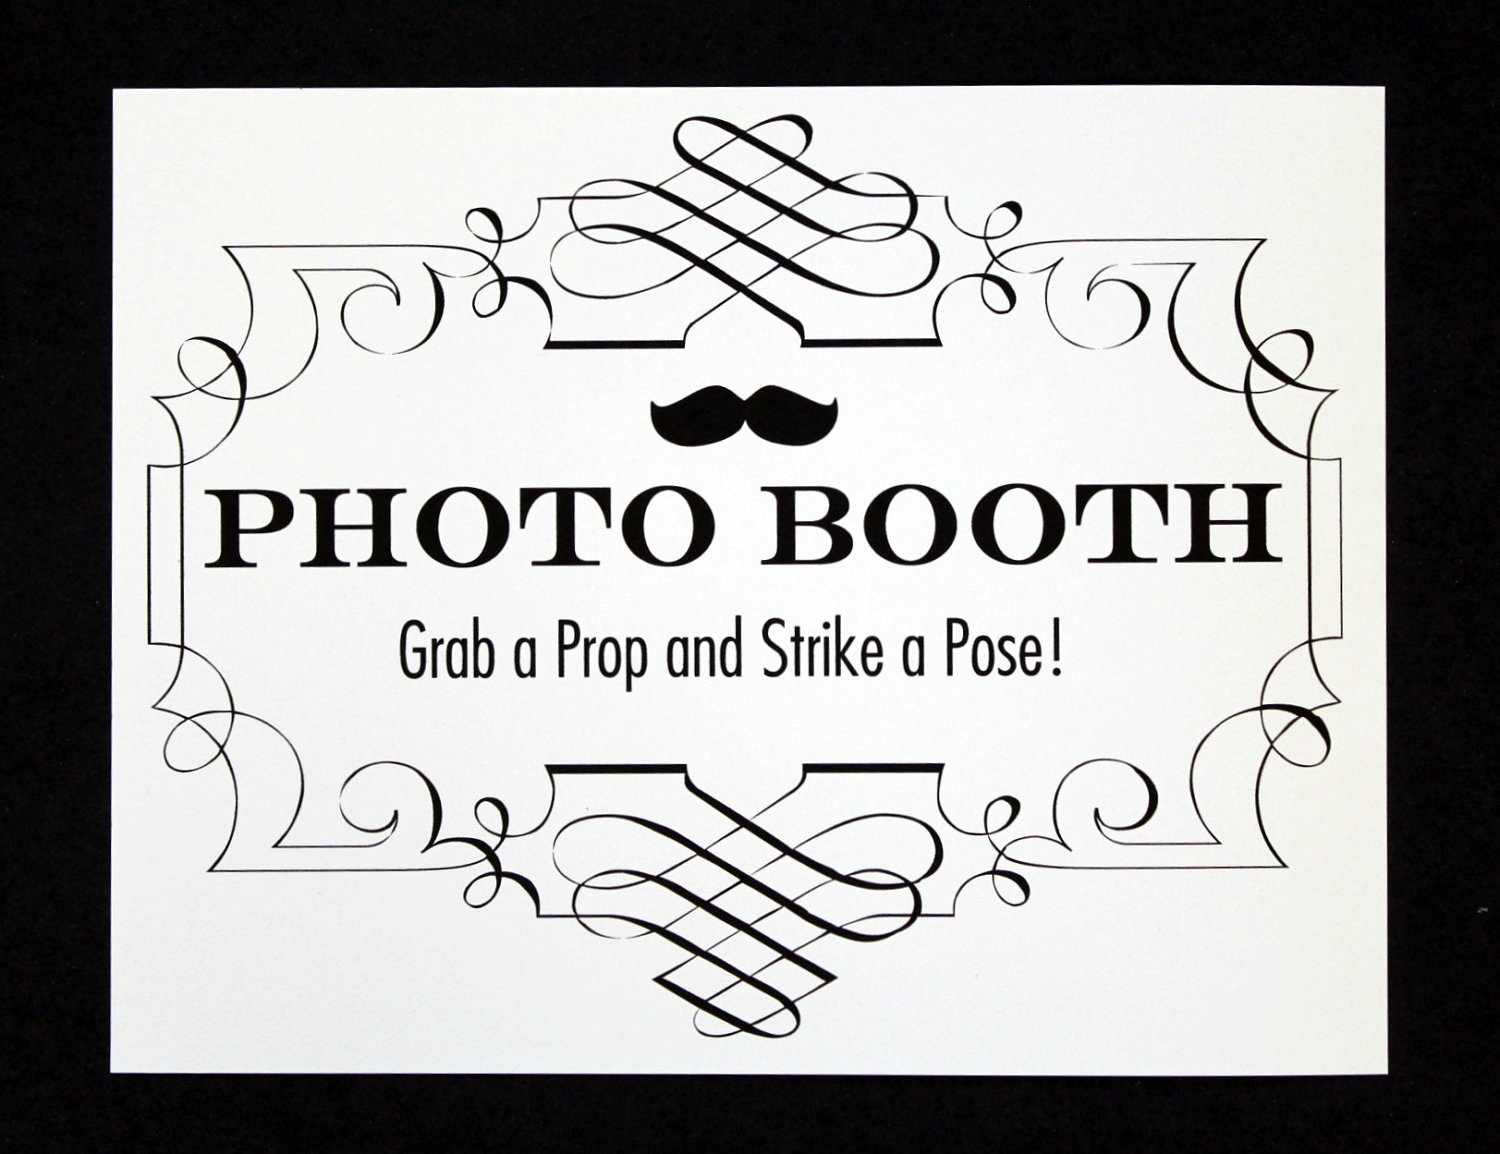 17 Photo Booth Sign Images - Free Printable Photo Booth Sign - Free Printable Photo Booth Sign Template